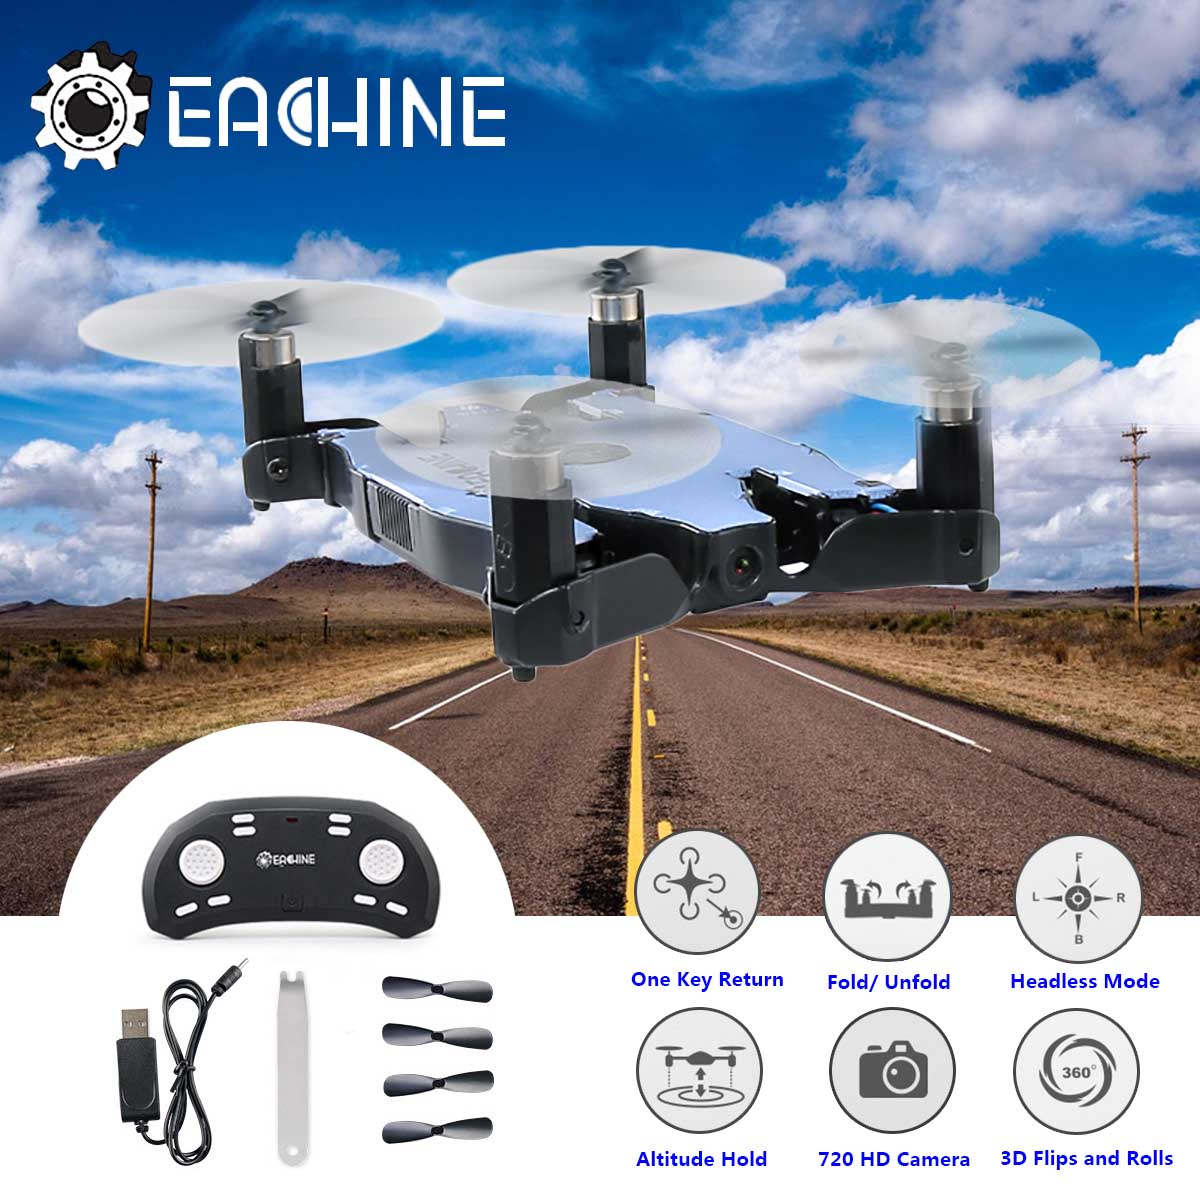 Hot Sale Eachine E57 WiFi FPV With 720P HD Camera Auto Foldable Arm Altitude Hold RC Quadcopter Selfie Drone VS JJRC H49 newest apple shape foldable wifi fpv rc drone rc130 2 4g apple quadcopter with 6axis gryo with 720p wifi hd camera rc drones